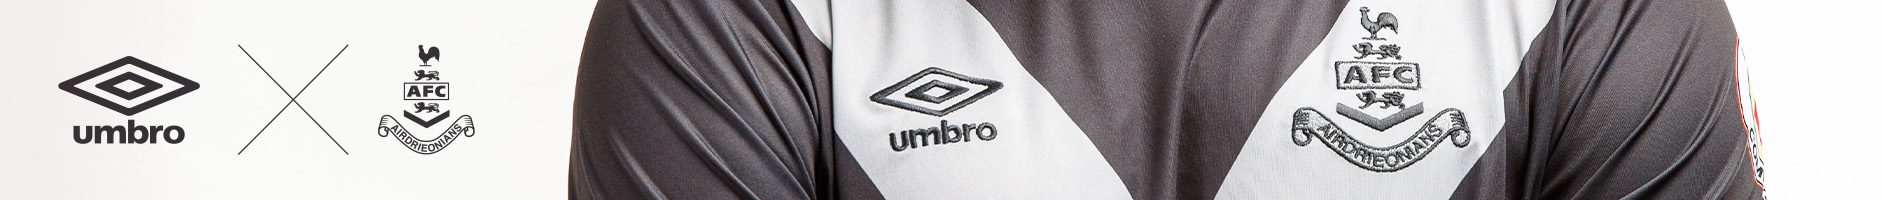 Umbro x Airdrieonians